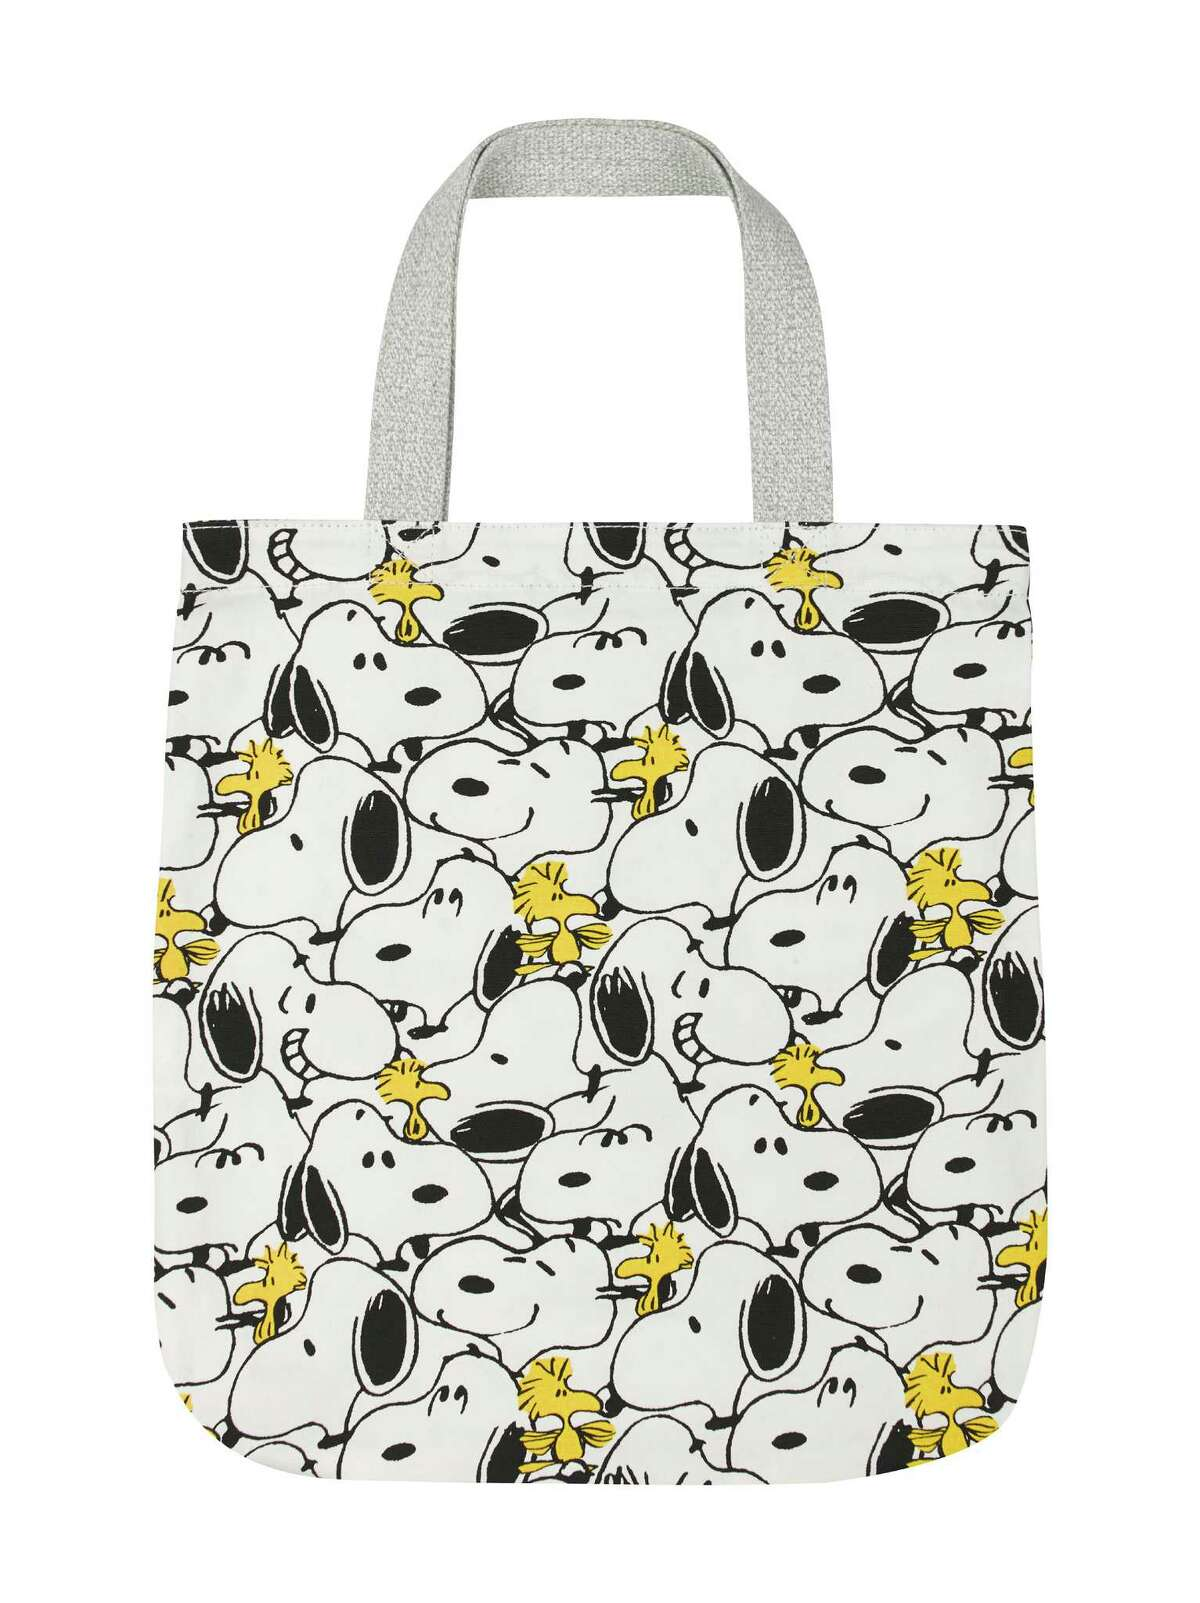 GapKids & 'Peanuts' graphic tote: $34.95, at Gap stores nationwide.